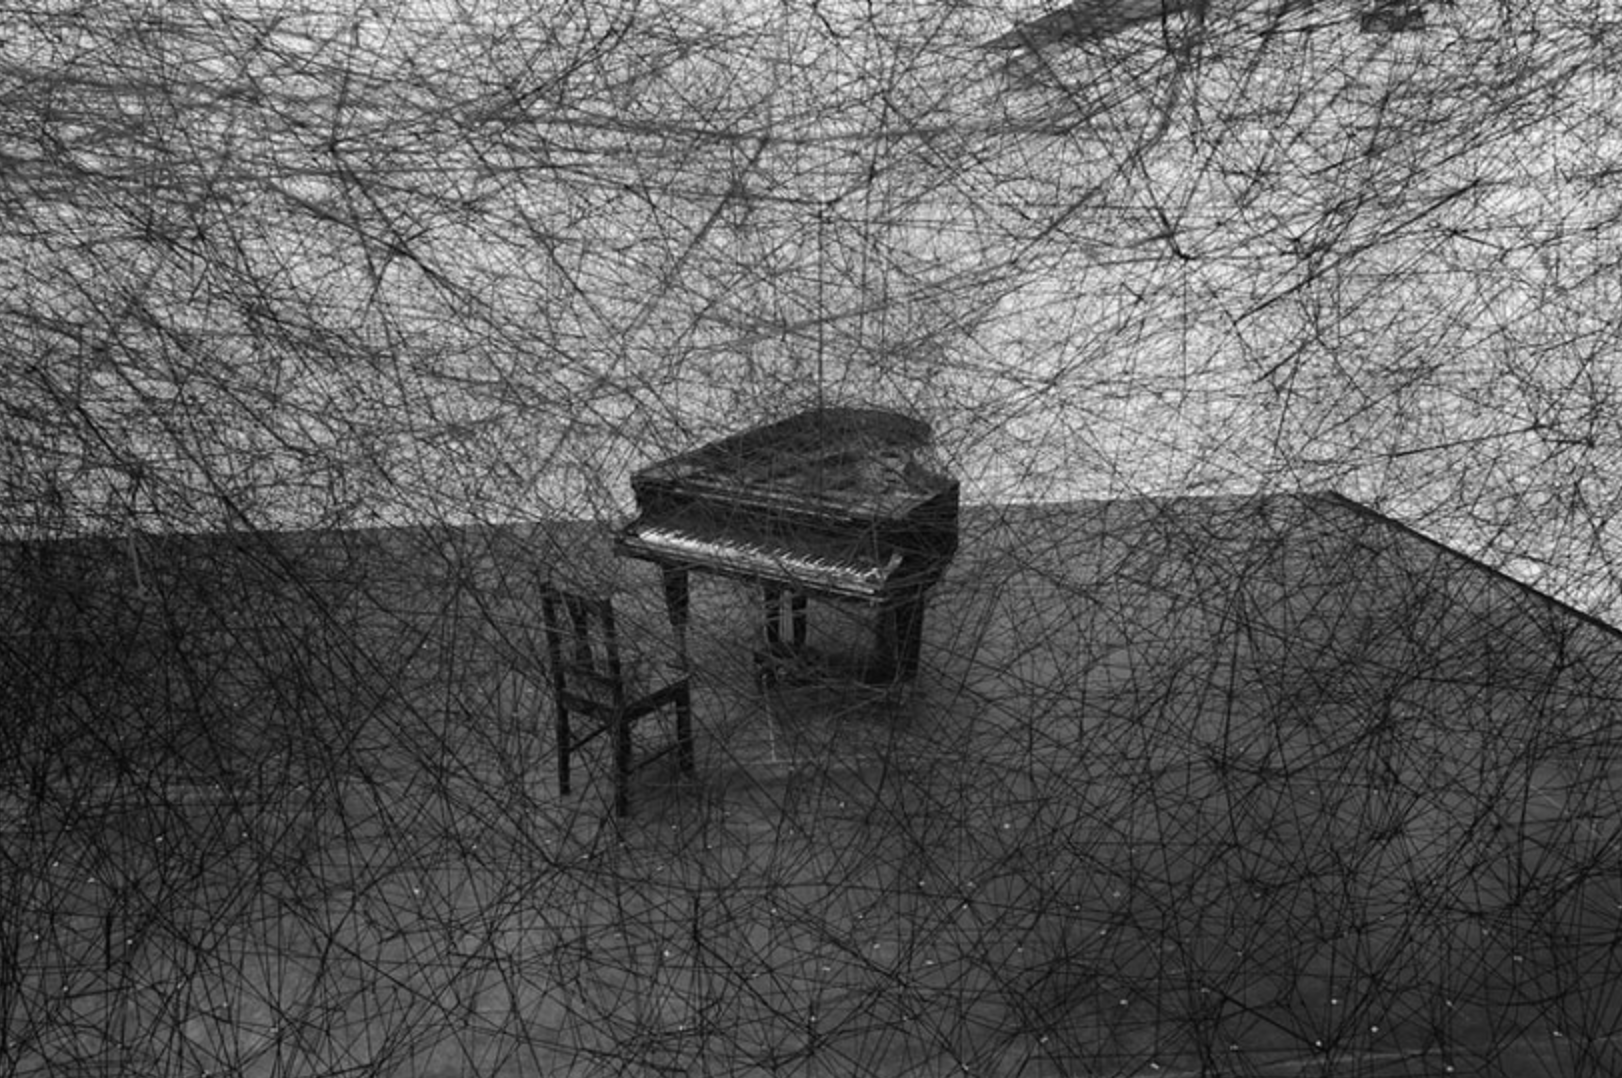 In Silence  2011 Chiharu Shiota. Curated by Oliver Varenne